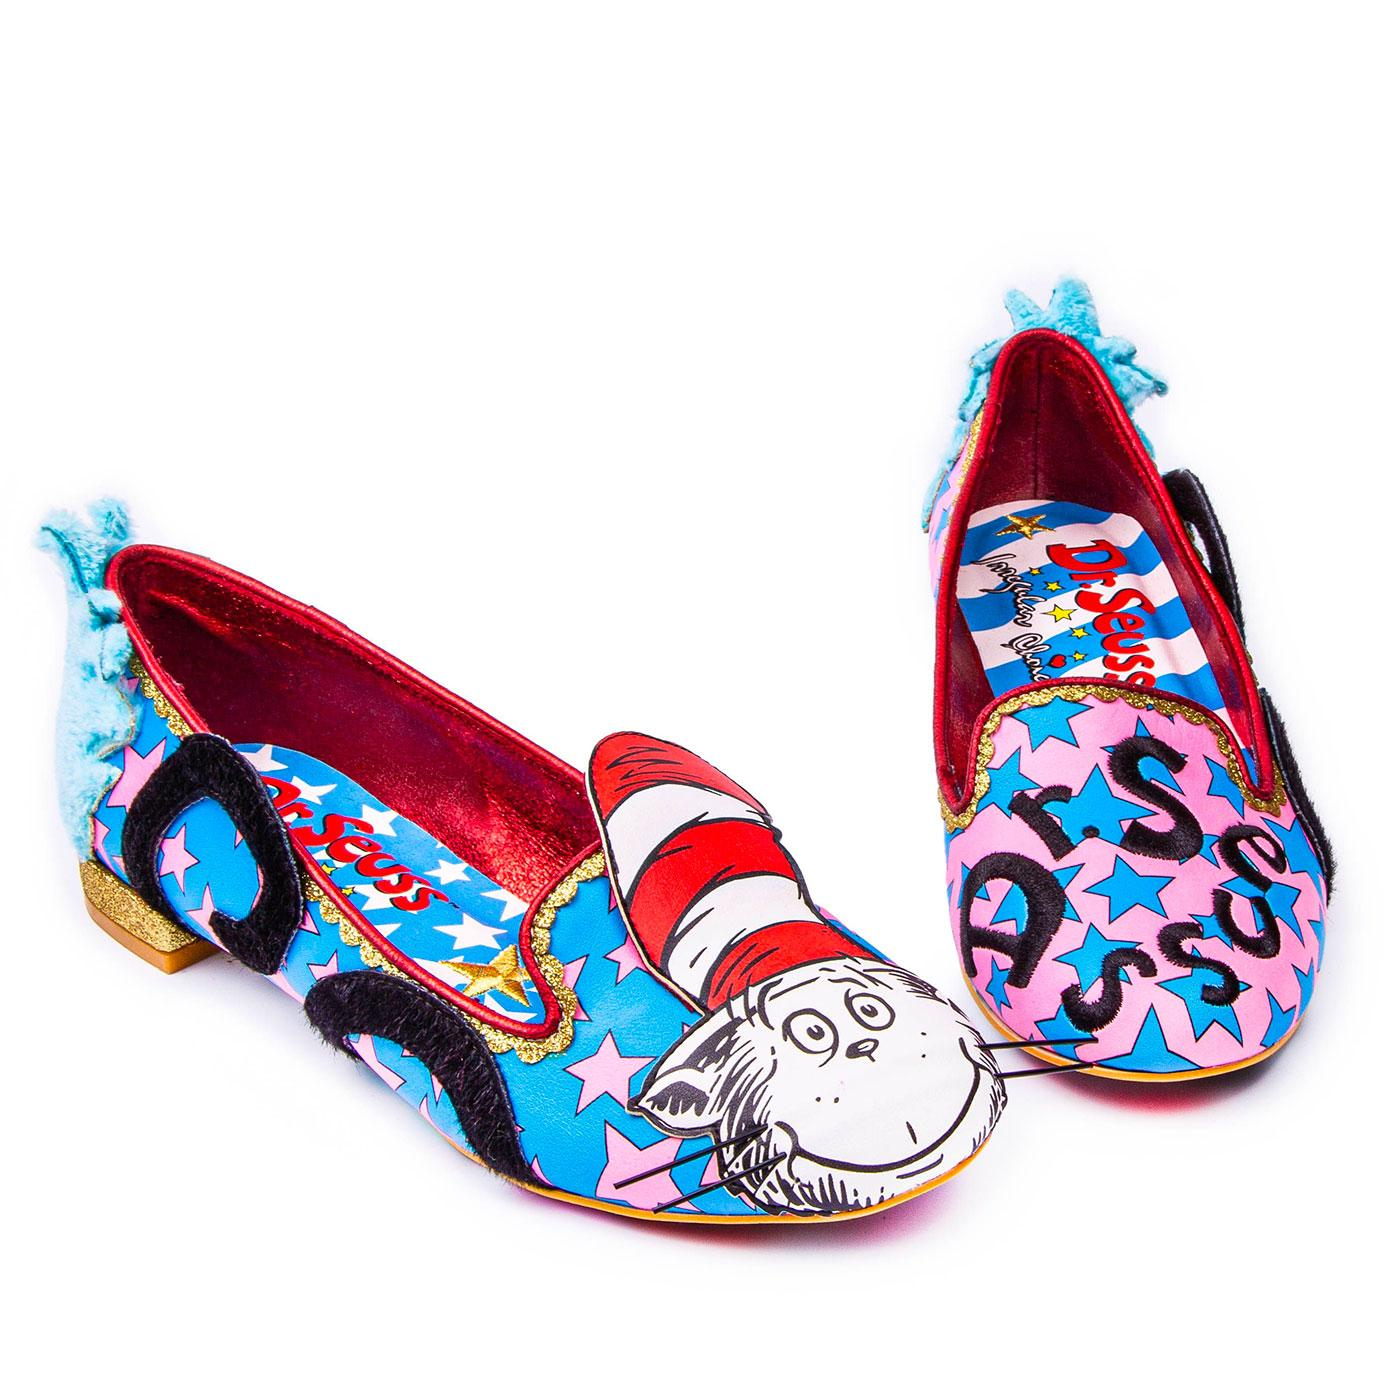 IRREGULAR CHOICE x CAT IN THE HAT Dr Seuss Shoes